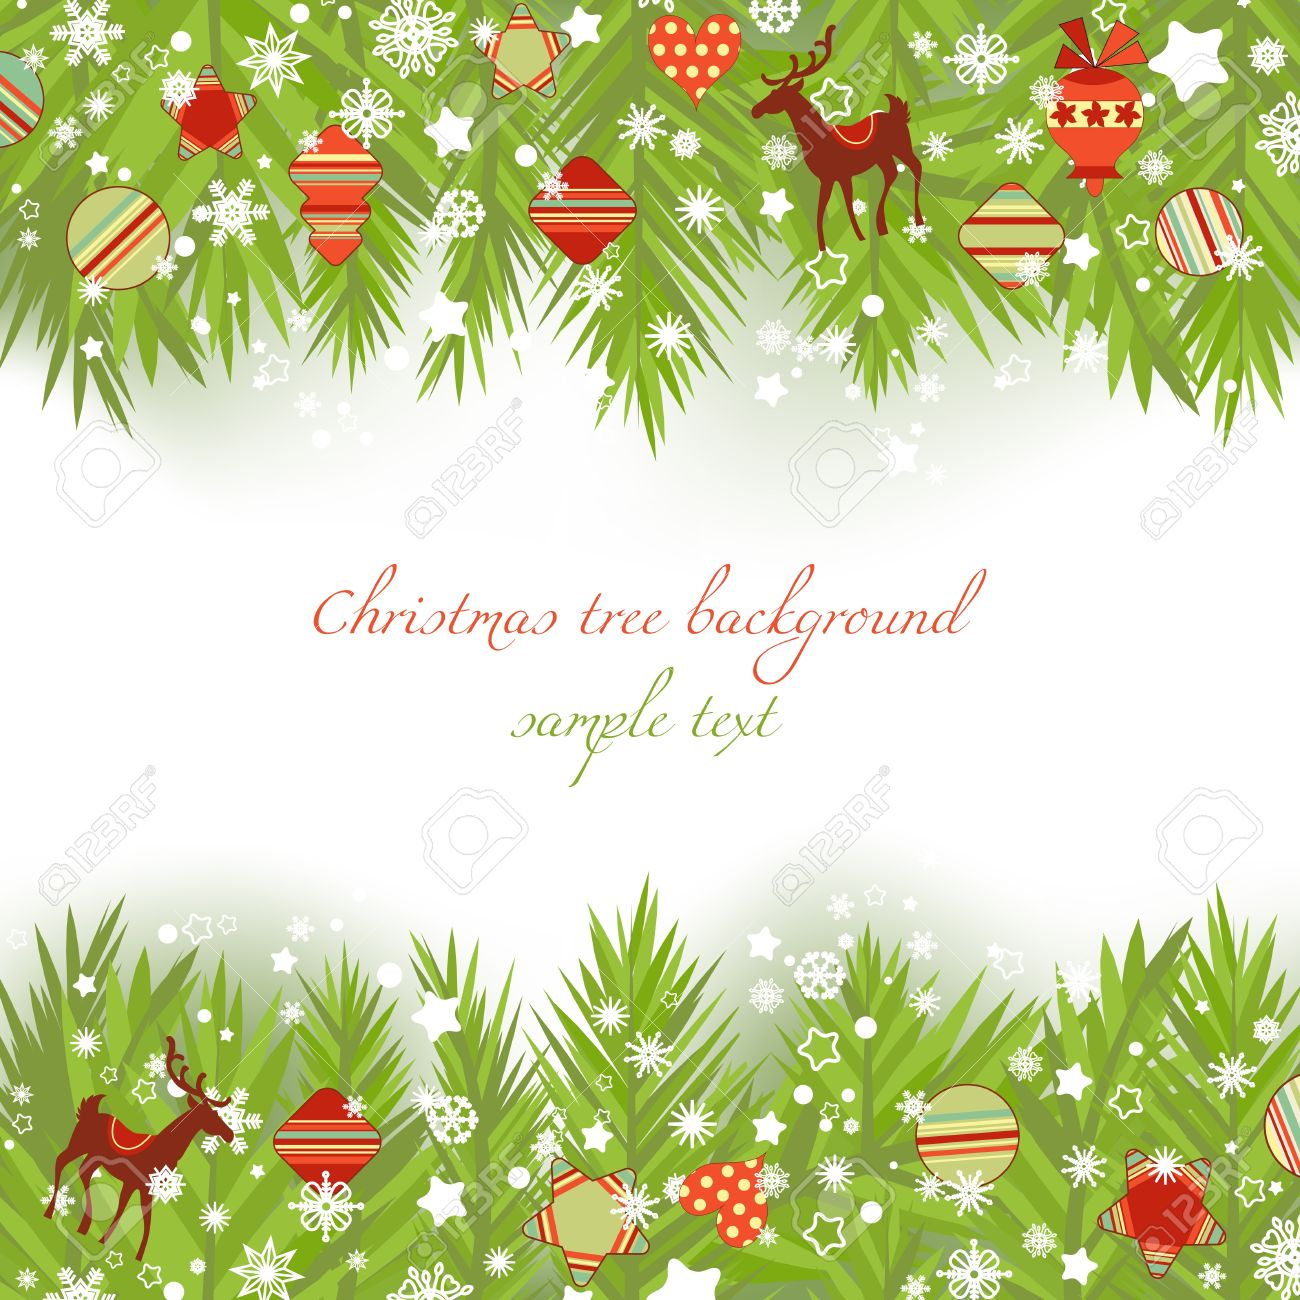 Christmas tree borders vector illustration Stock Vector - 11377017